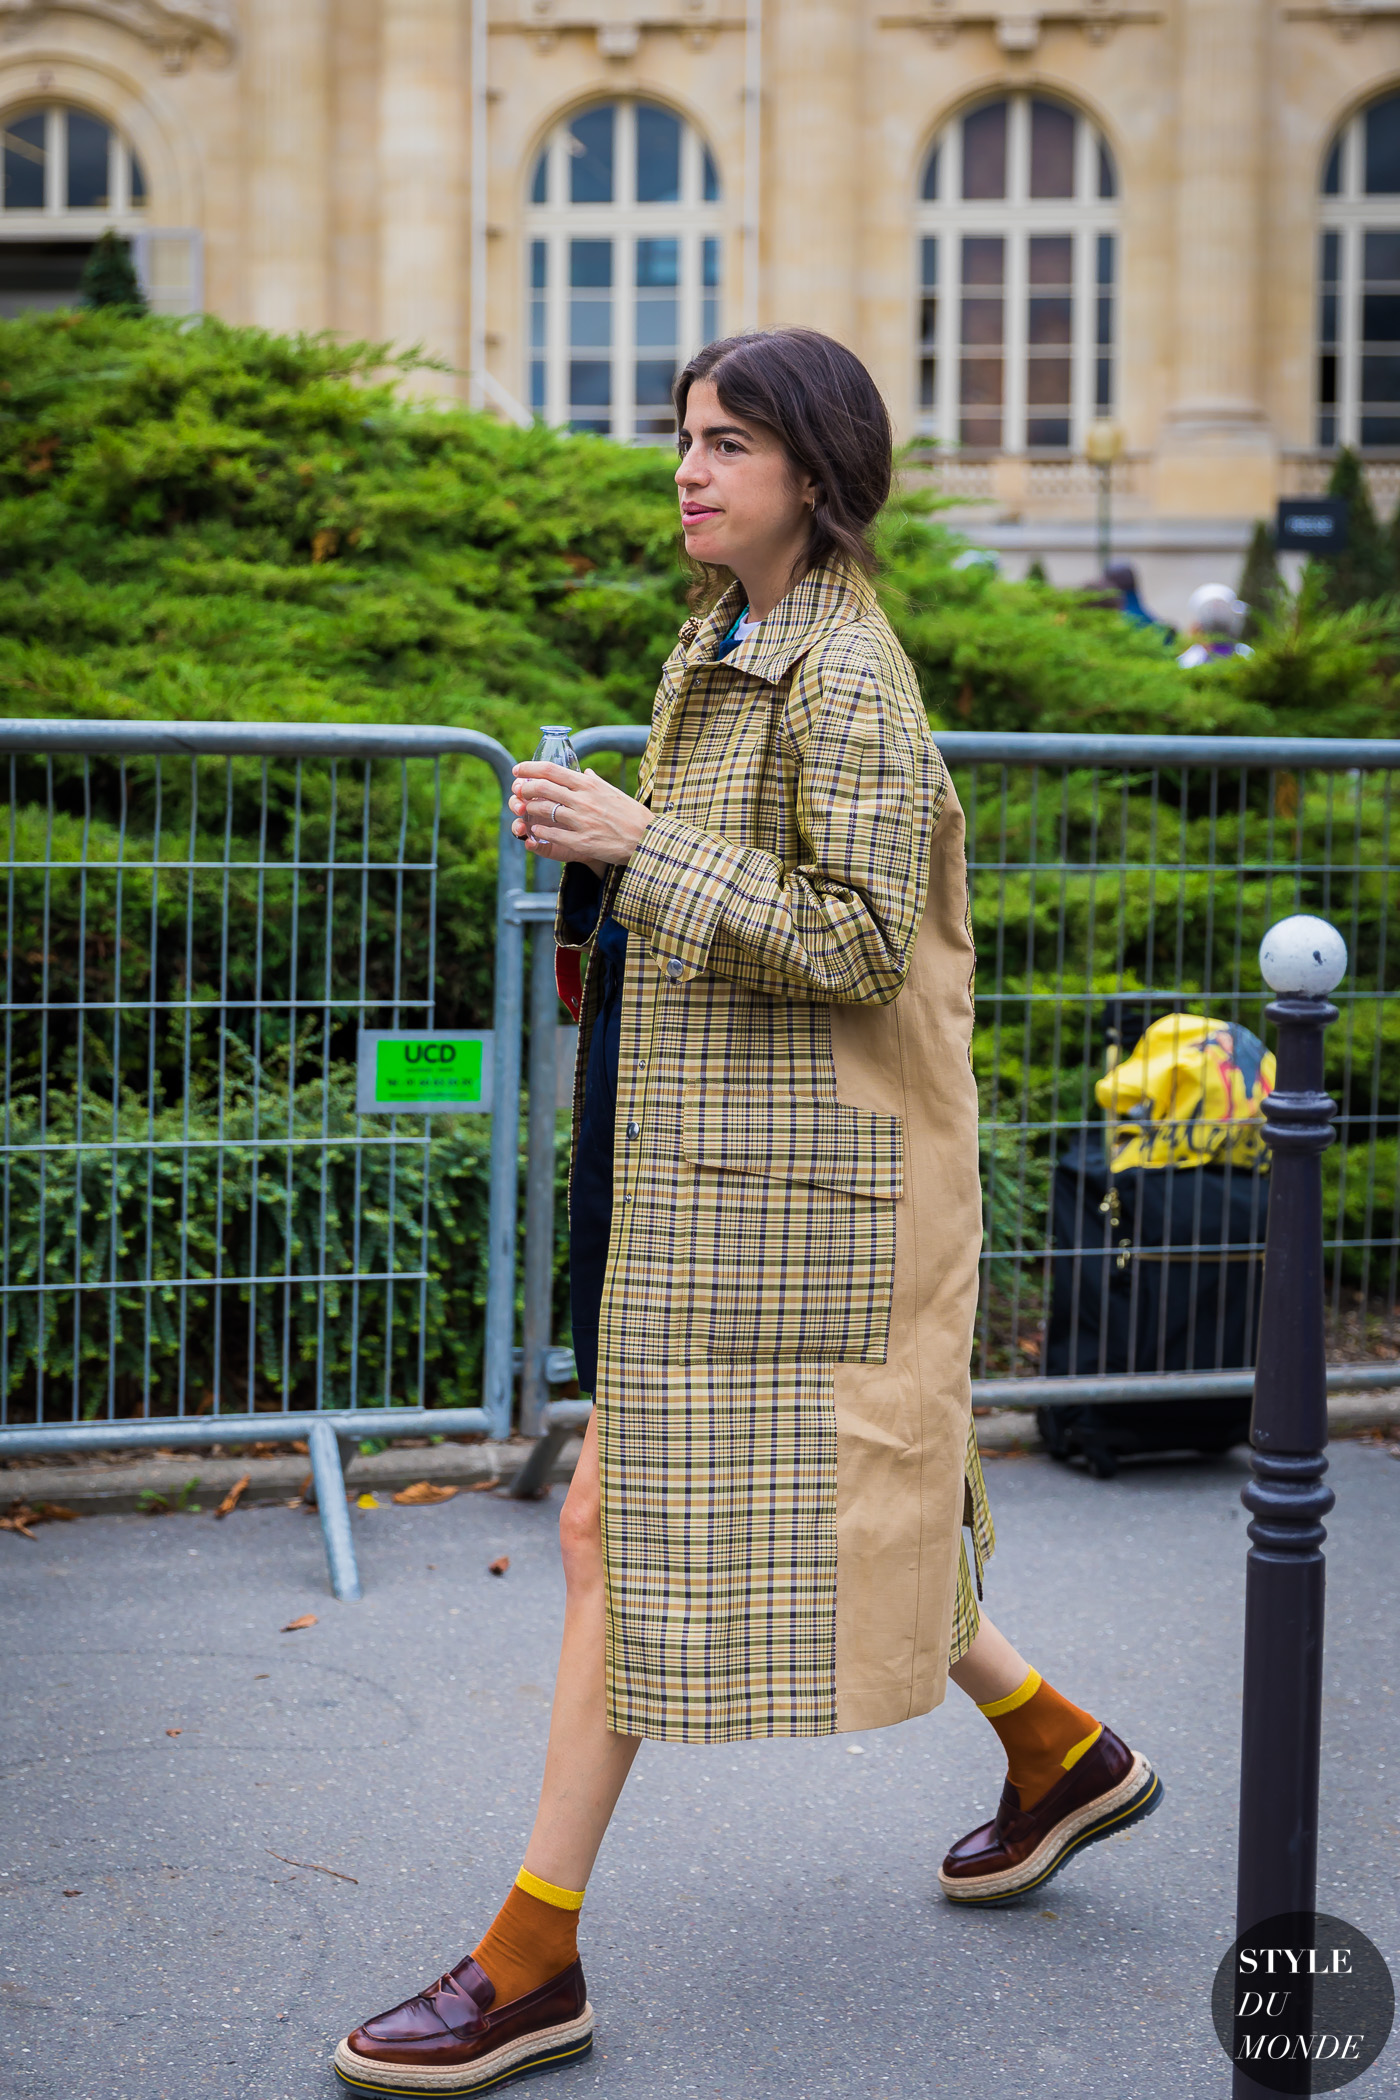 Leandra Medine by STYLEDUMONDE Street Style Fashion Photography_48A0694